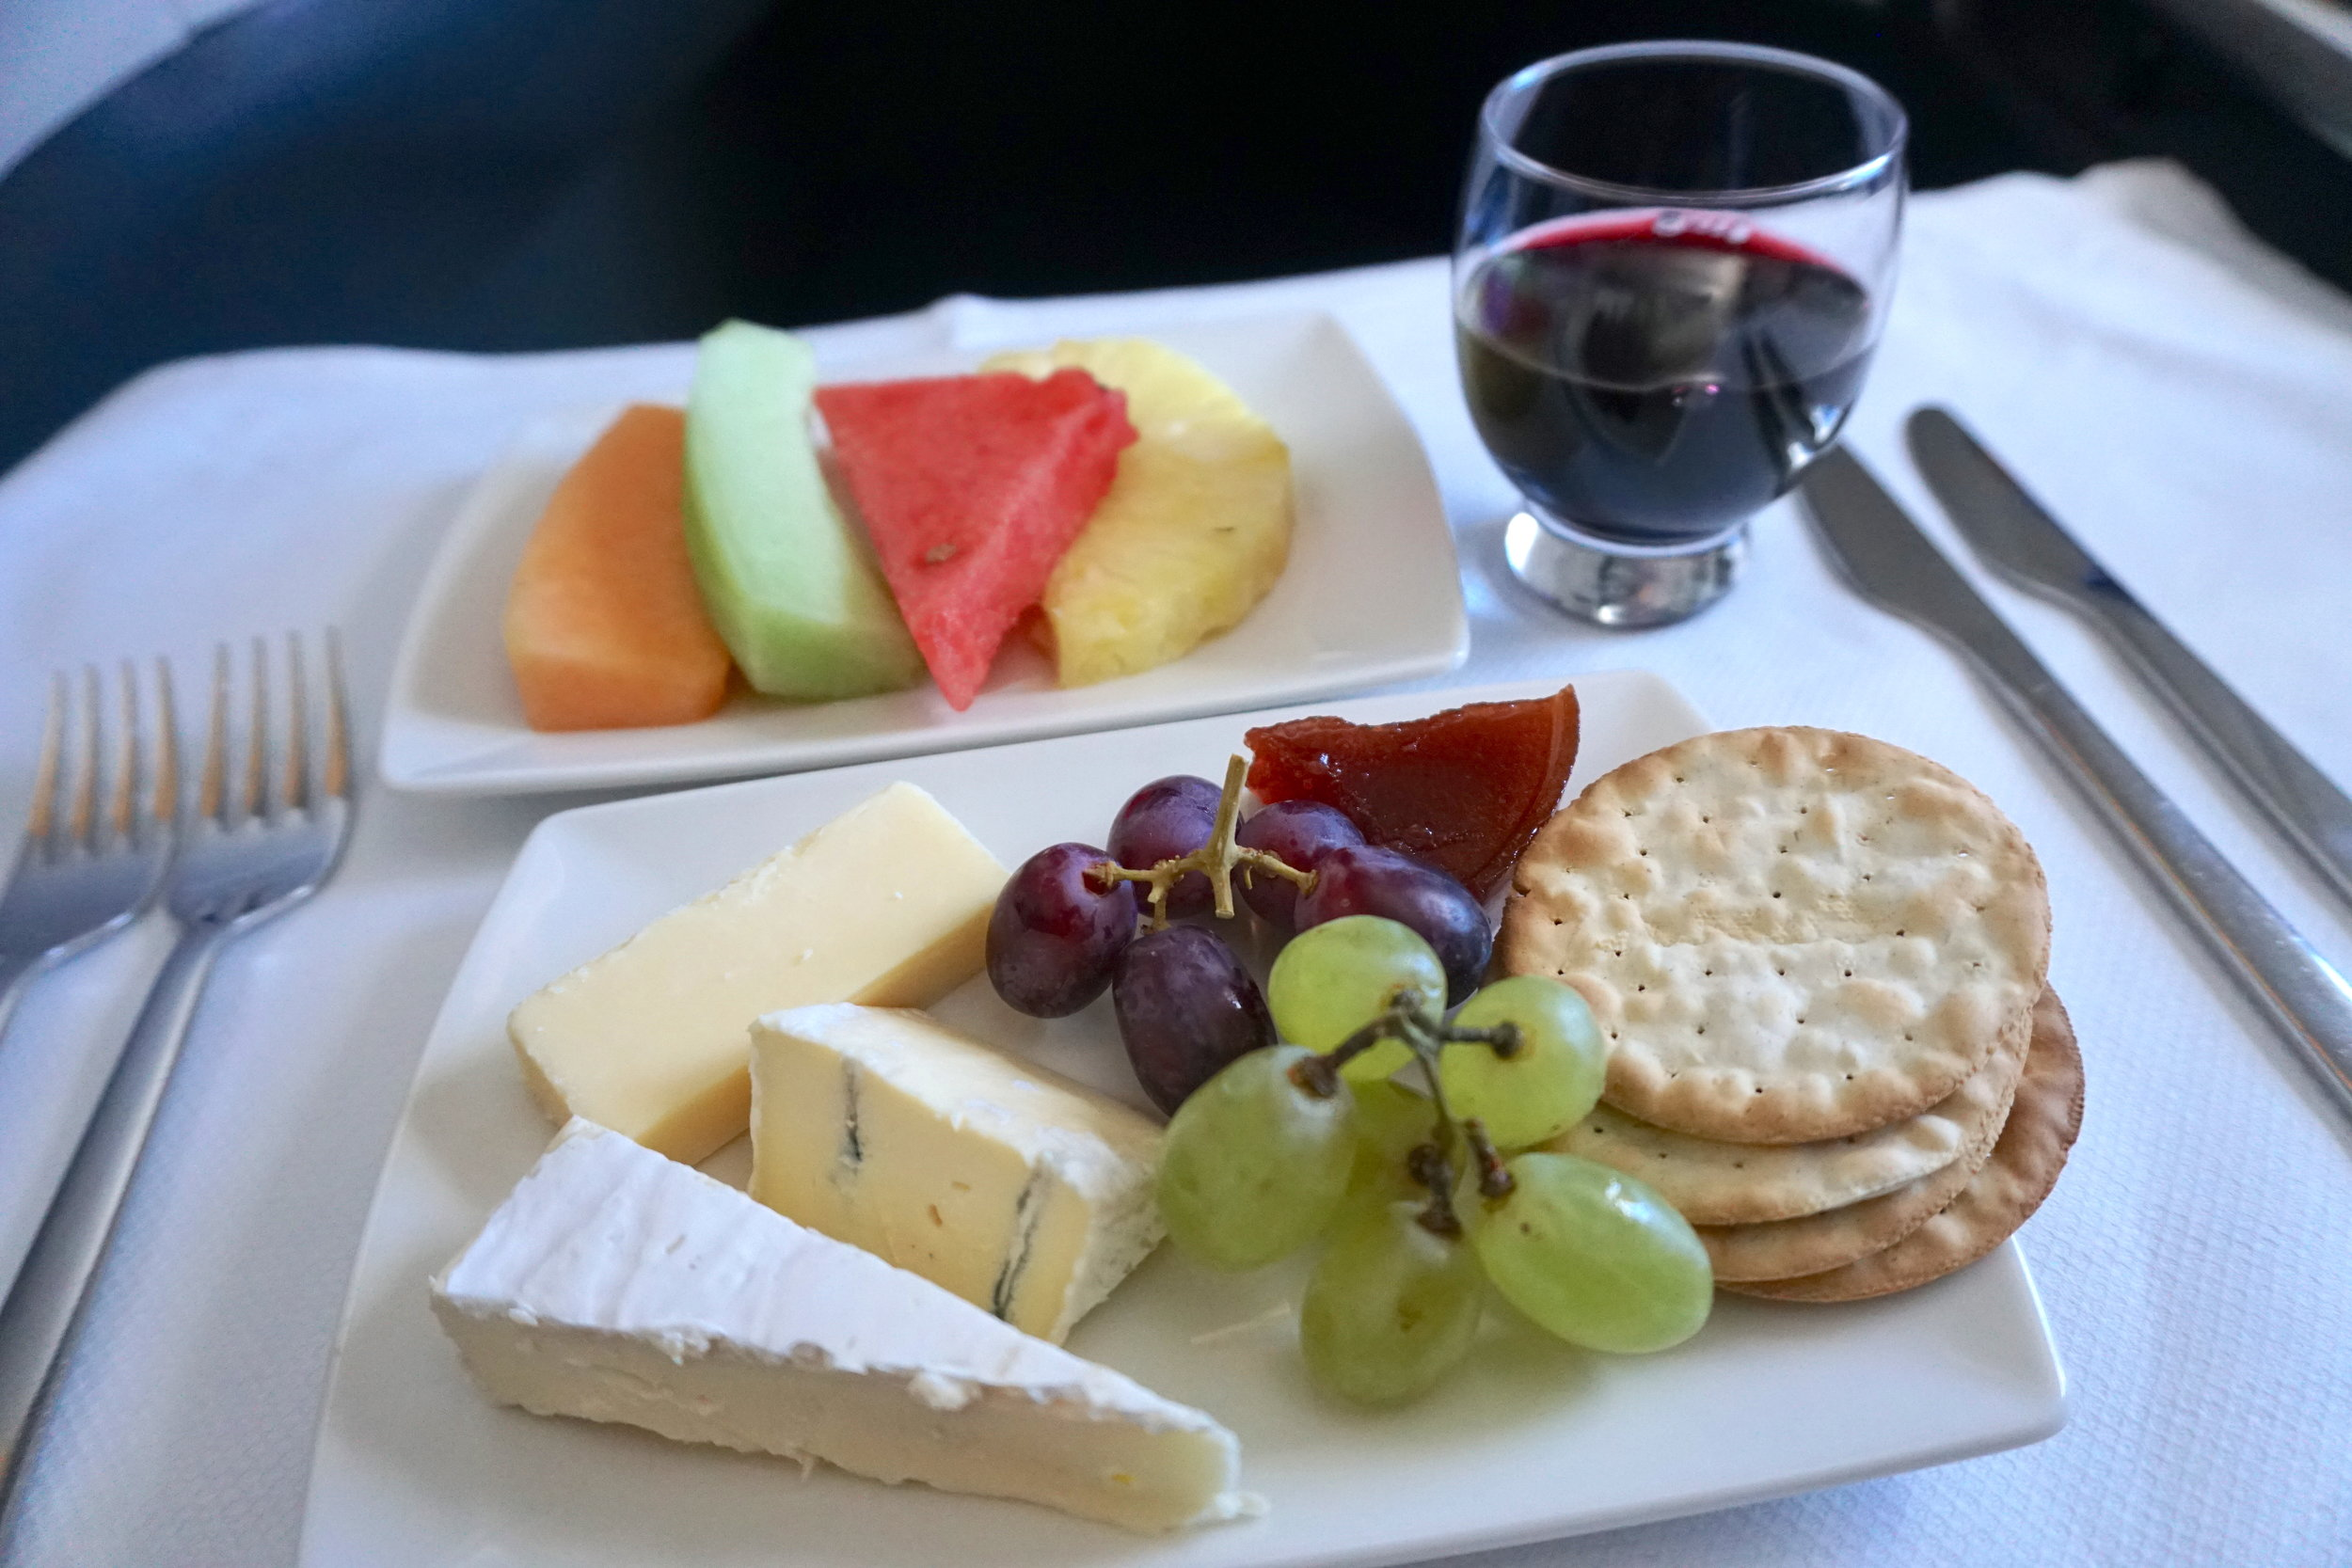 Chic snacks: Wine and cheese